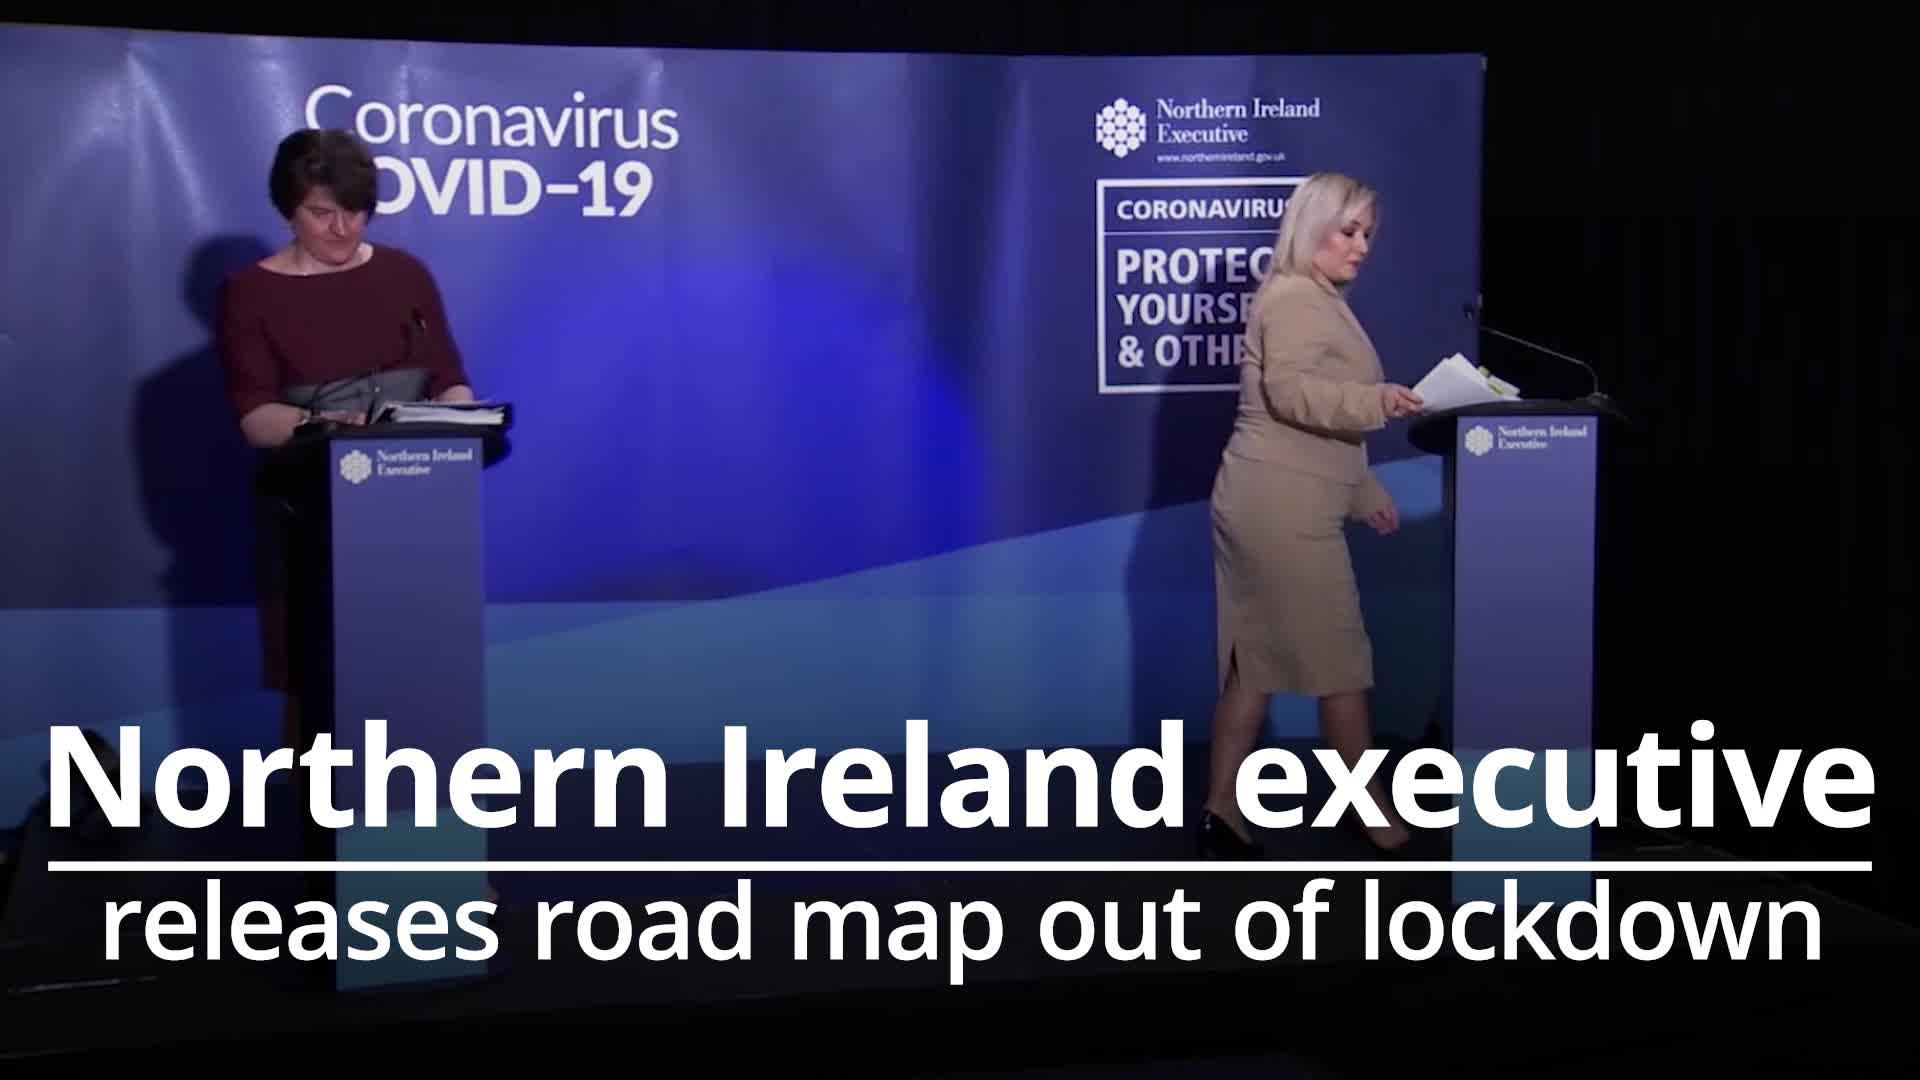 Northern Ireland release road map out of lockdown